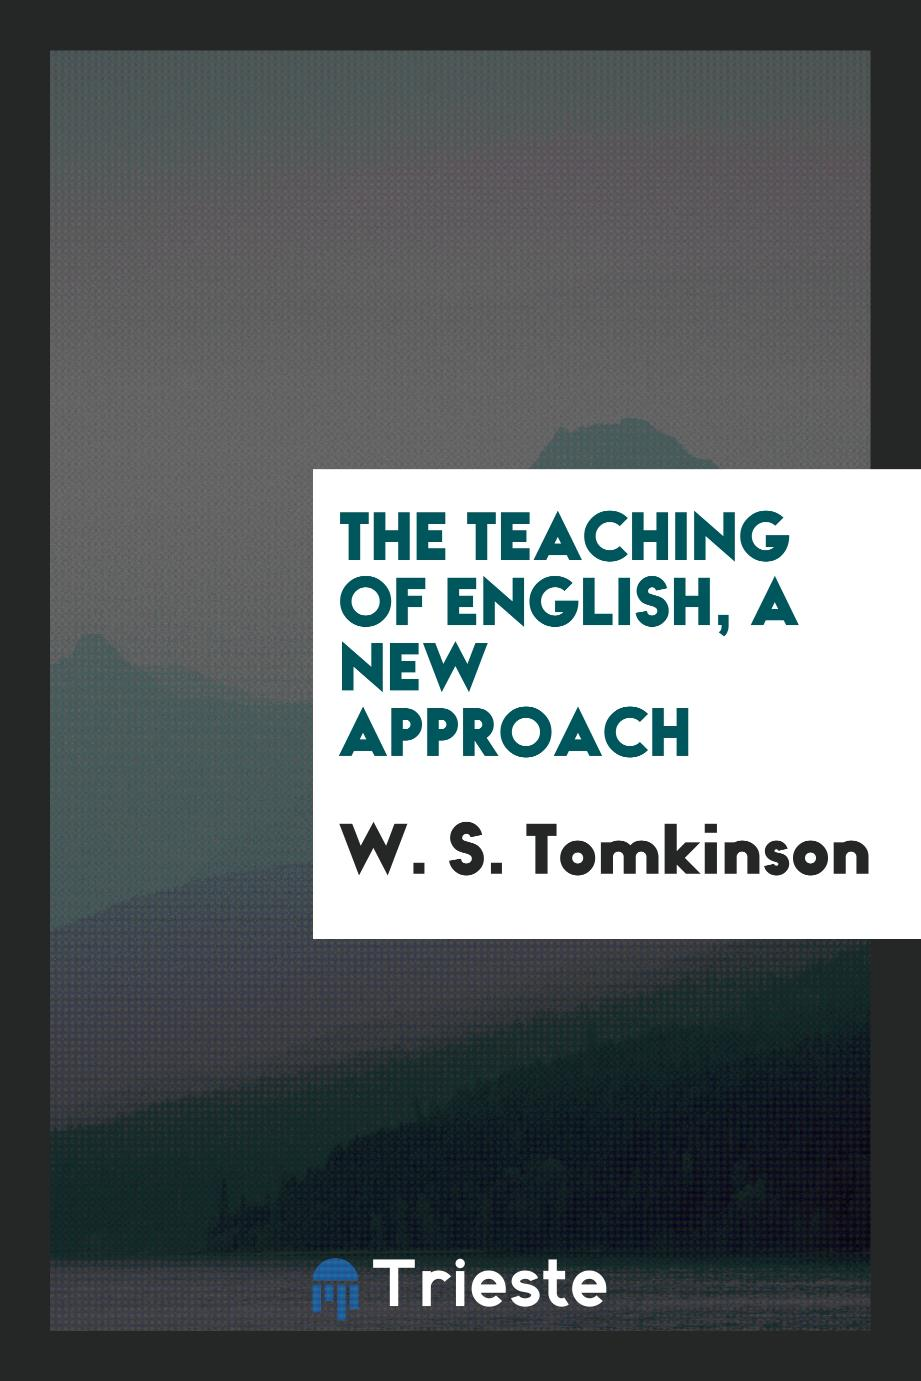 The teaching of English, a new approach